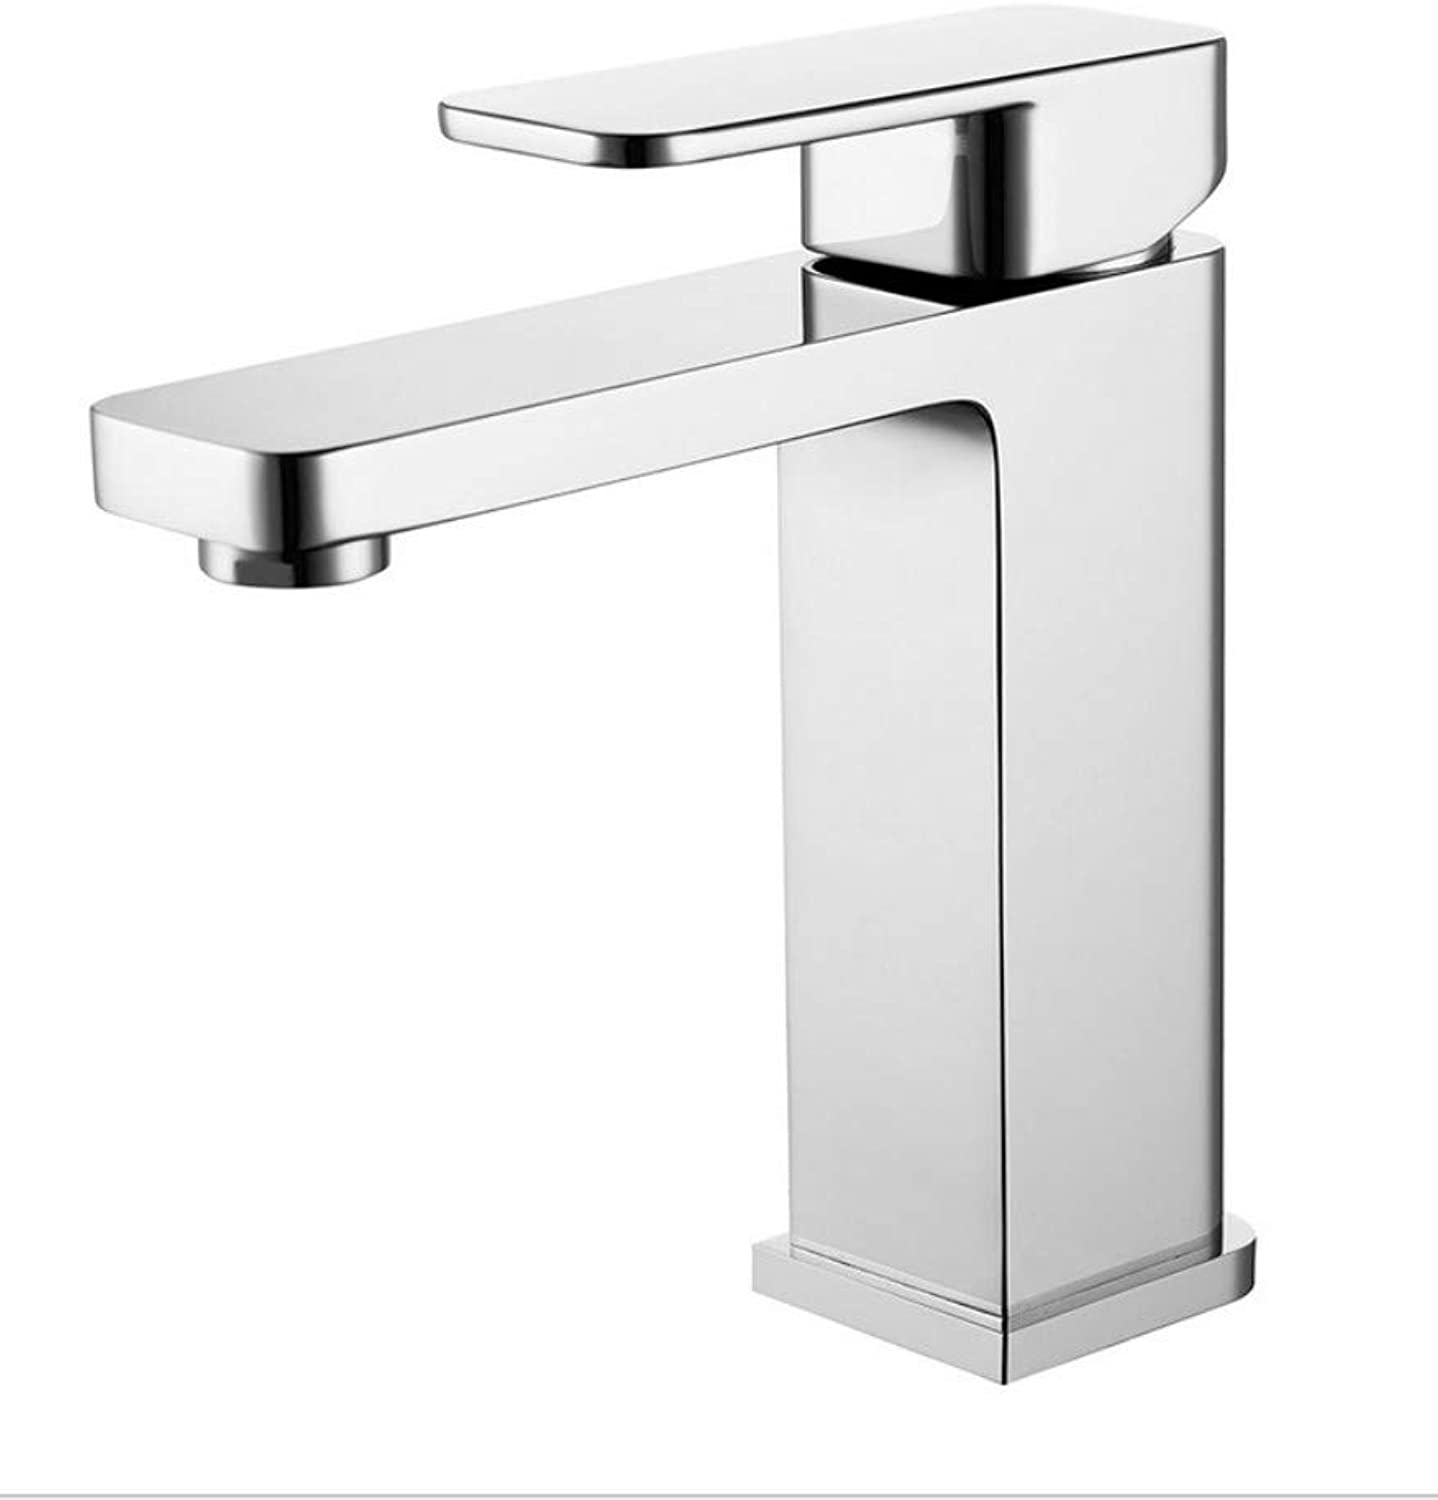 Xiujie Thickening Hot and Cold Wash Basin Copper Faucet Square Single Hole Single Wash Basin Double Faucet